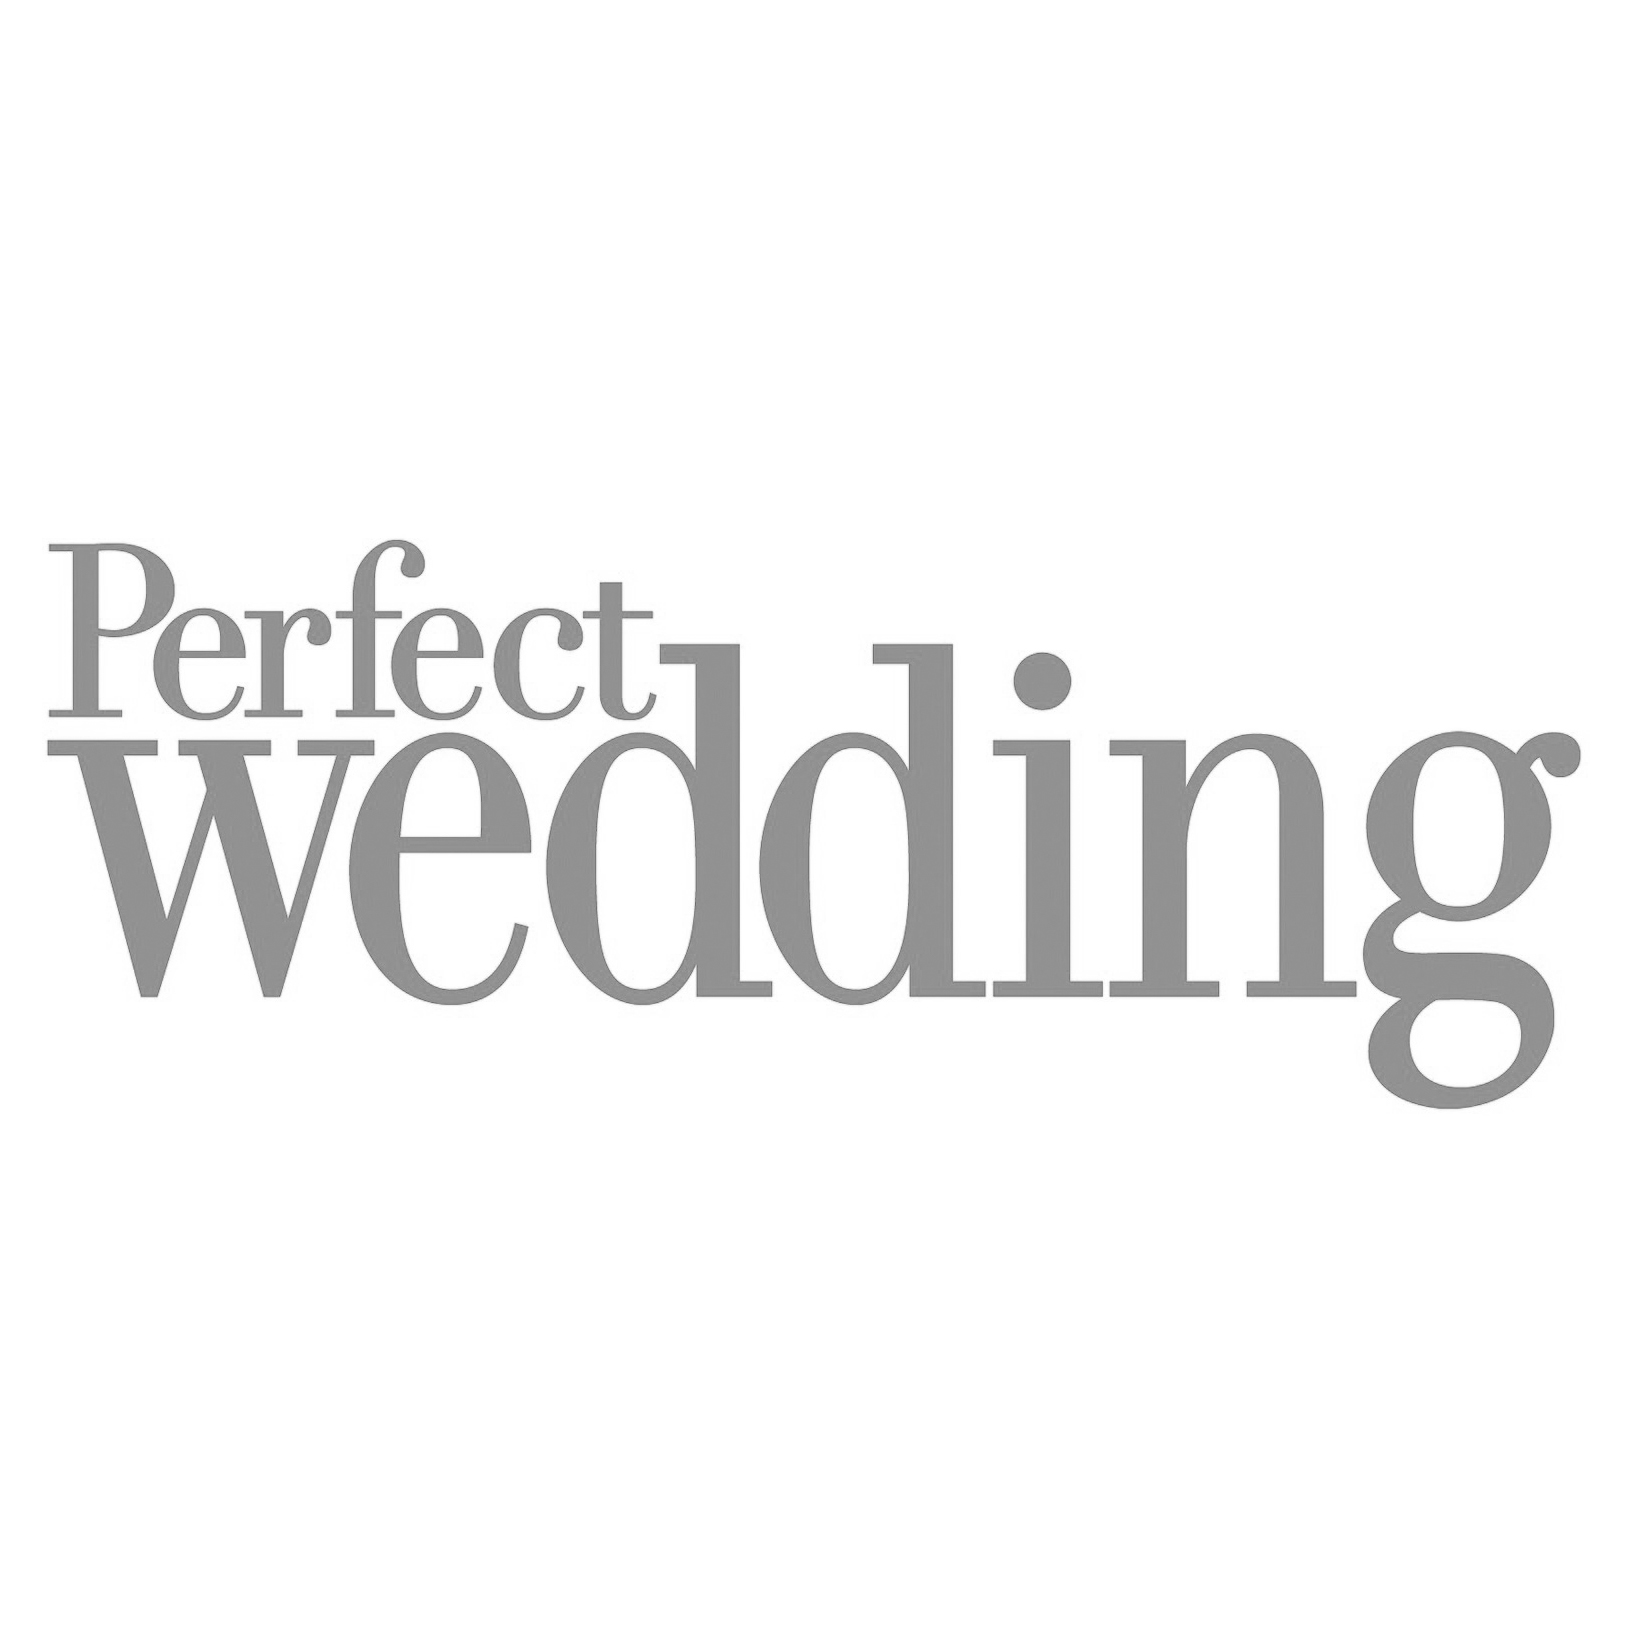 Perfect-Wedding bw.jpg